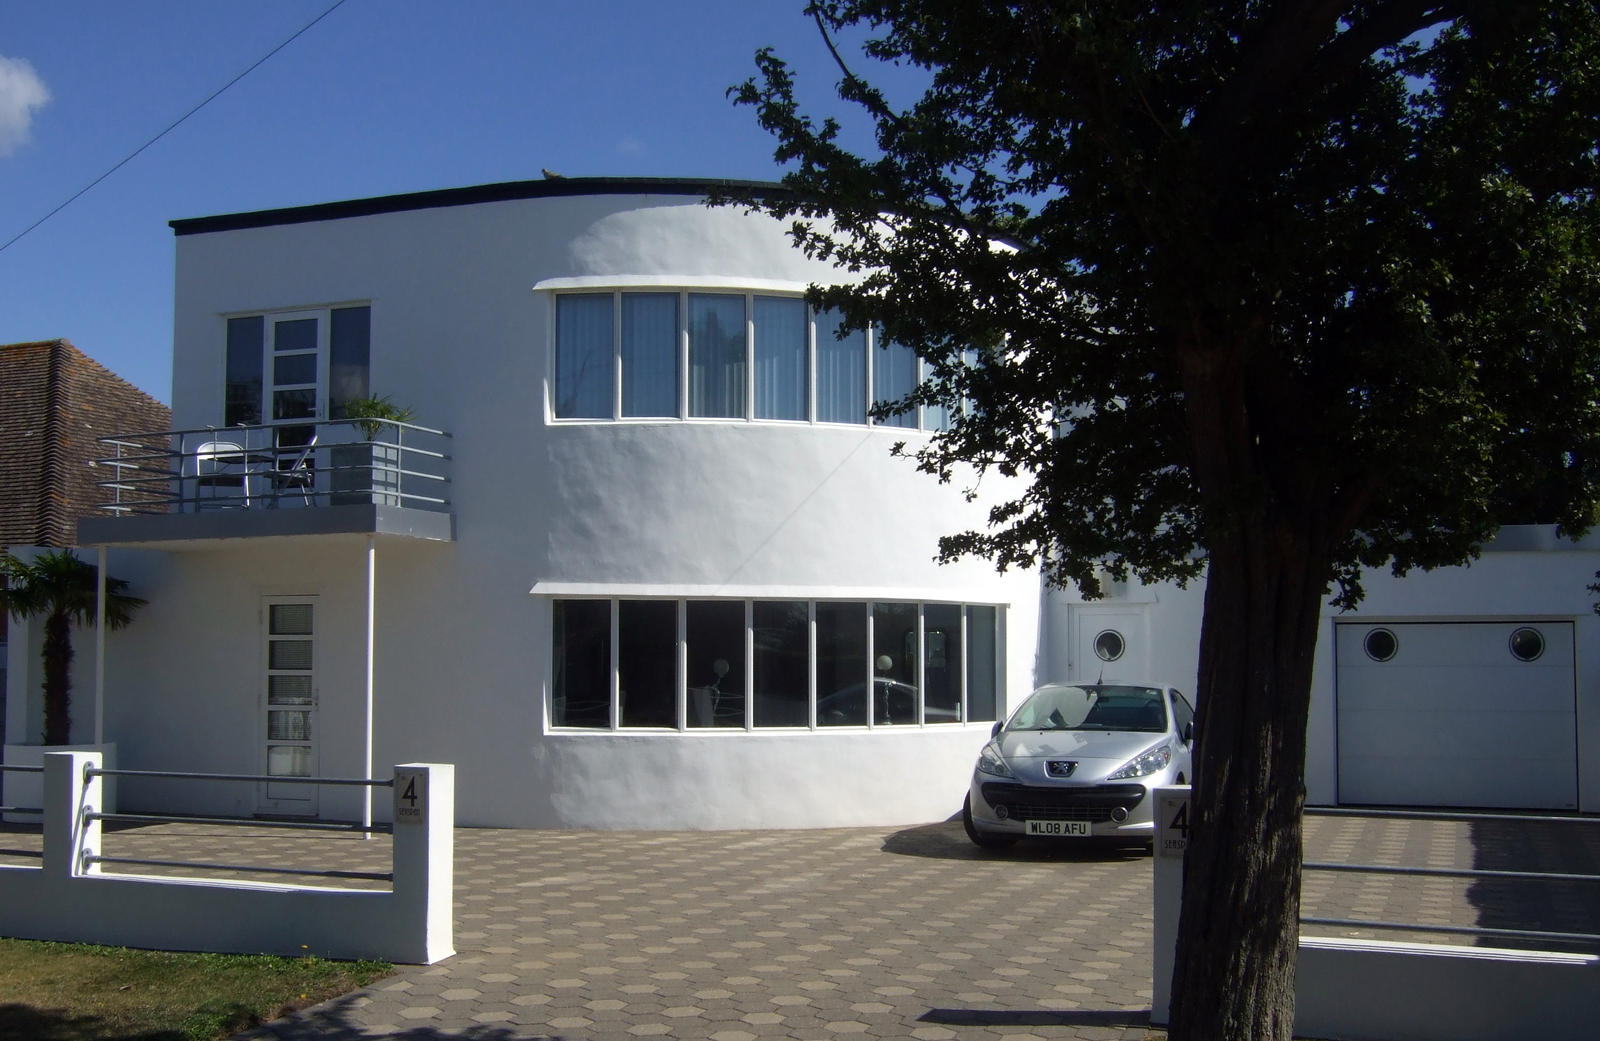 Art deco homes houses 7 by sceptre63 on deviantart for Home and deco